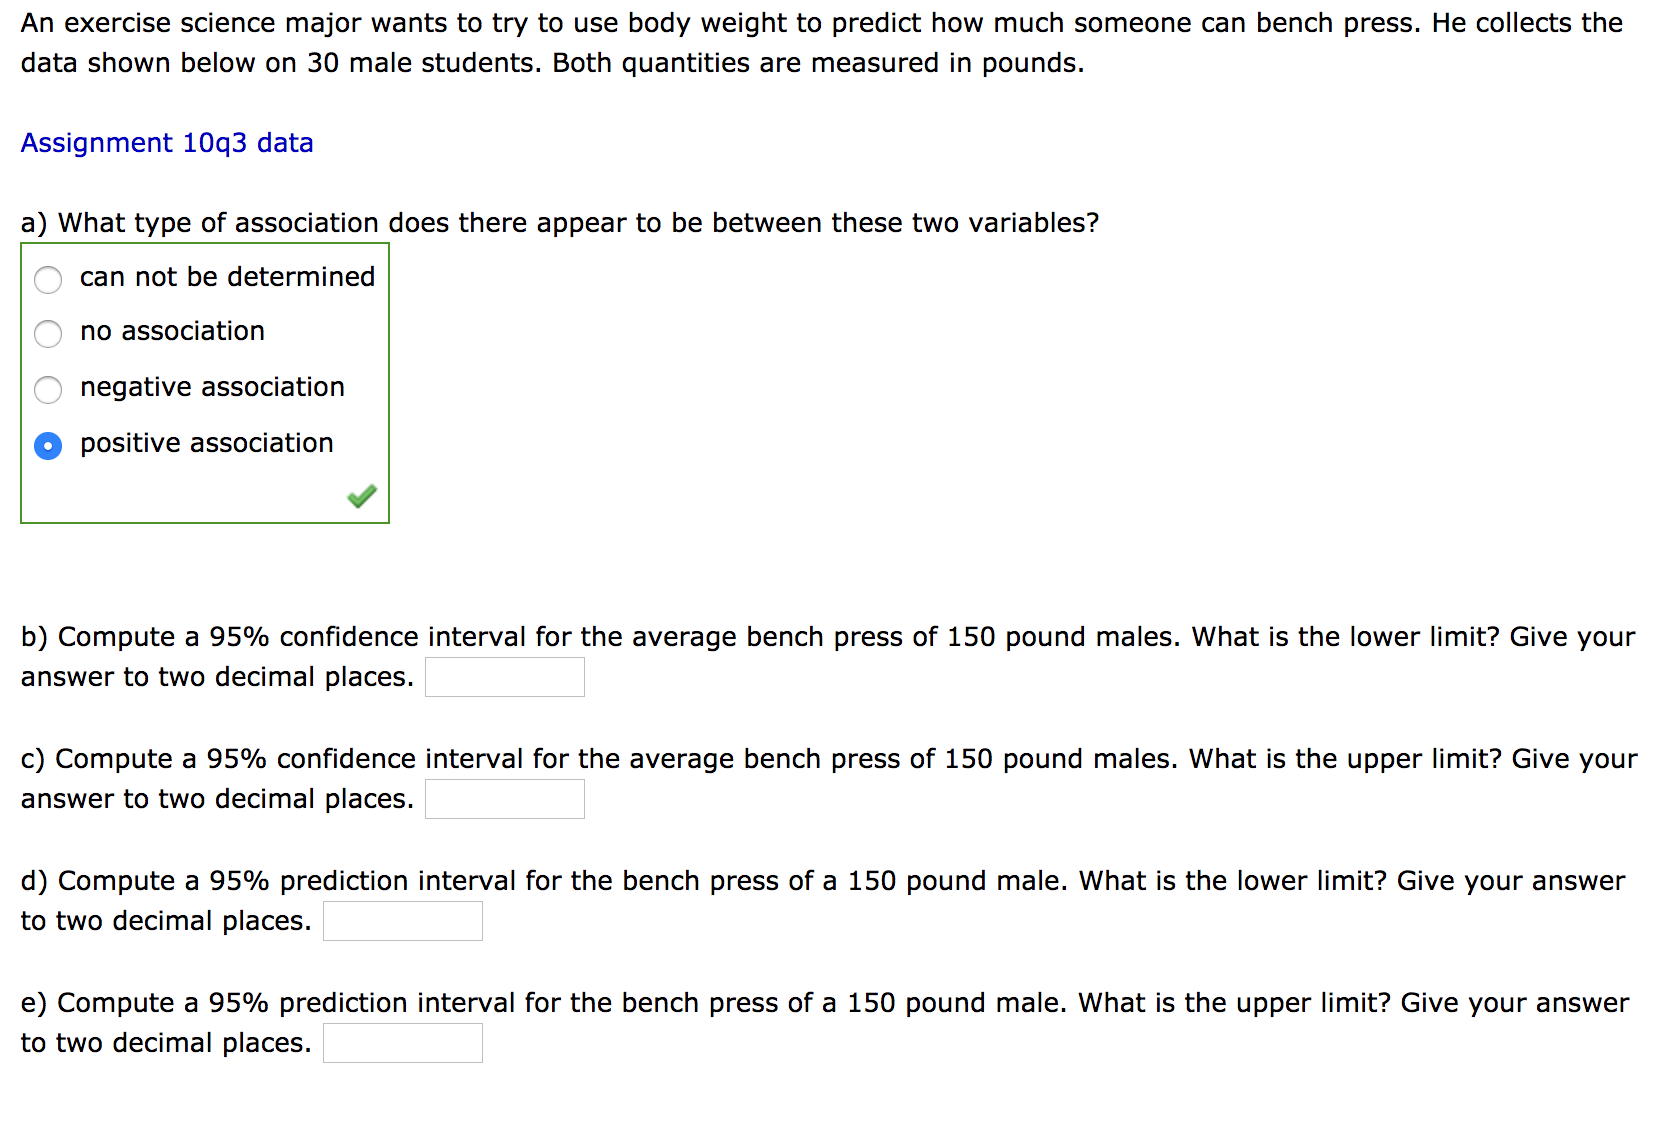 An exercise science major wants to try to use body weight to predict how much someone can bench press. He collects the data shown below on 30 male students. Both quantities are measured in pounds. Assignment 10q3 data a) What type of association does there appear to be between these two variables? can not be determined no association negative association positive association b) Compute a 95% confidence interval for the average bench press of 150 pound males. What is the lower limit? Give your answer to two decimal places. c) Compute a 95% confidence interval for the average bench press of 150 pound males. What is the upper limit? Give your answer to two decimal places. d) Compute a 95% prediction interval for the bench press of a 150 pound male. What is the lower limit? Give your answer to two decimal places. e) Compute a 95% prediction interval for the bench press of a 150 pound male. What is the upper limit? Give your answer to two decimal places. OO O